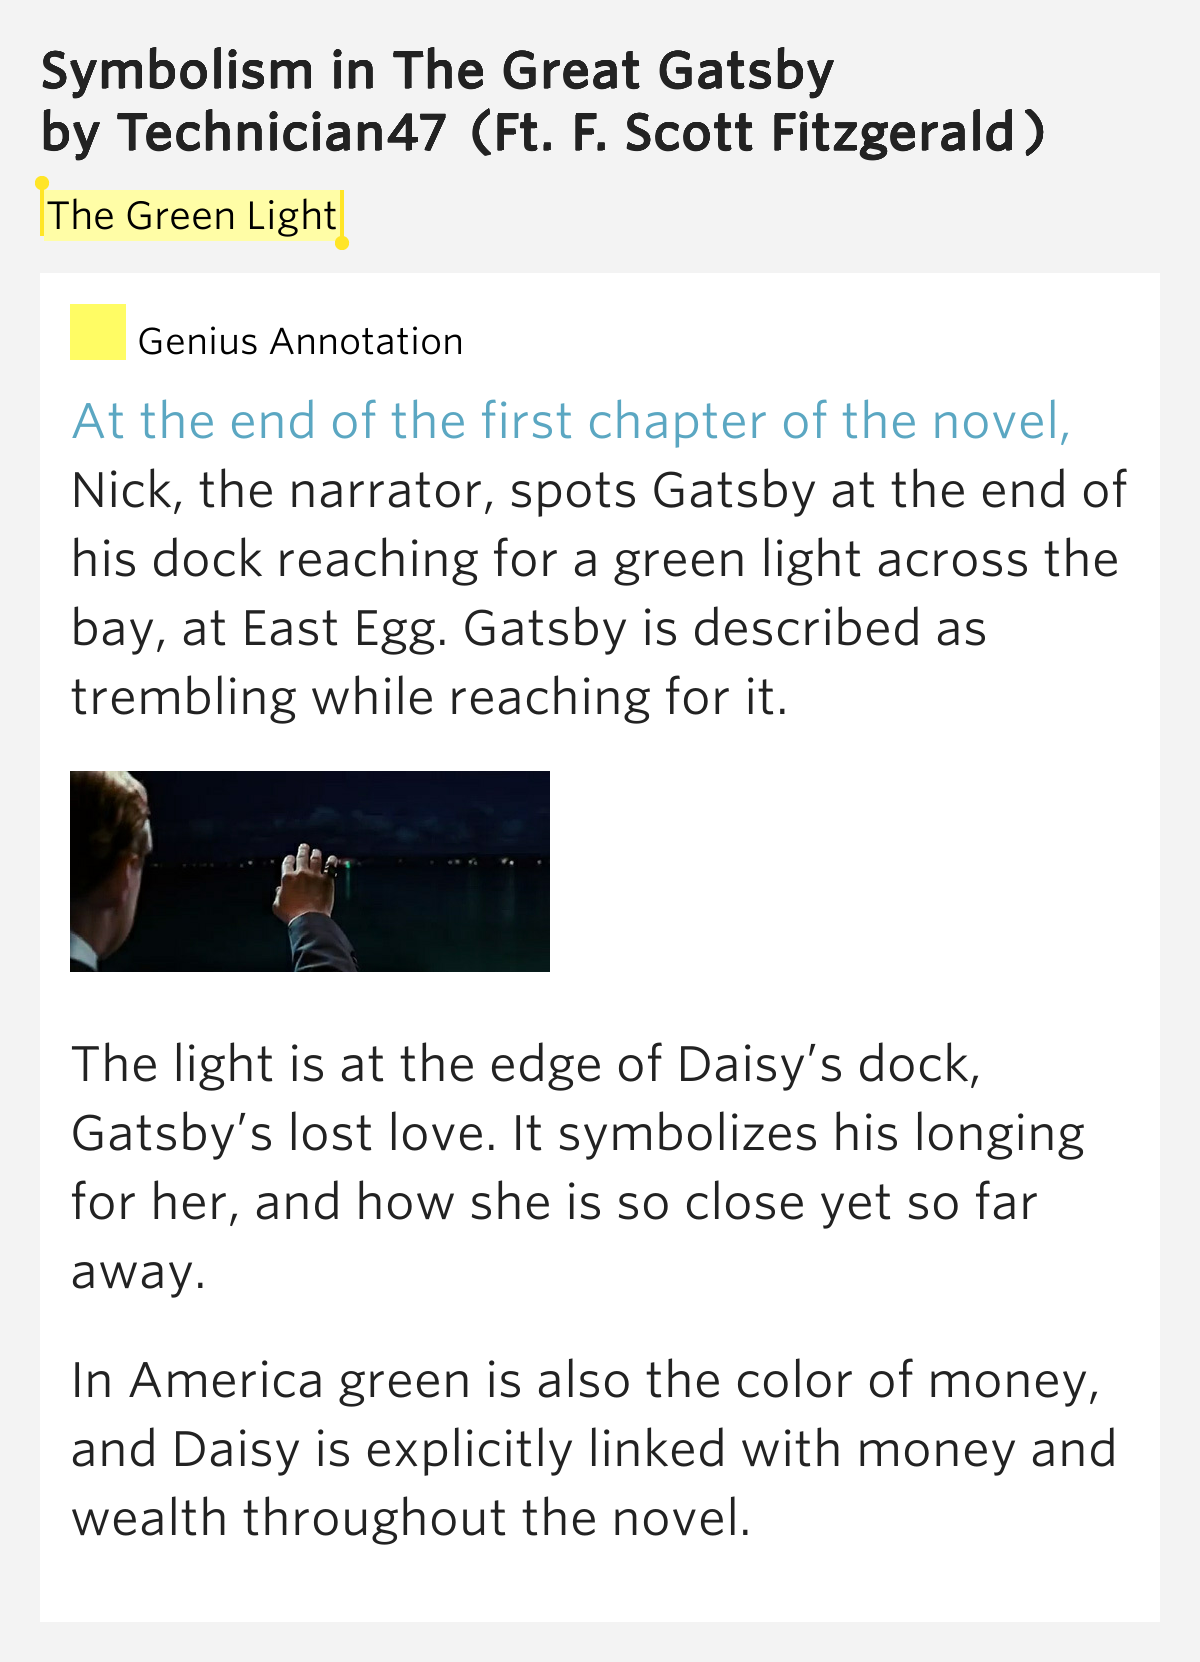 An analysis of the symbolism in the great gatsby a novel by f scott fitzgerald